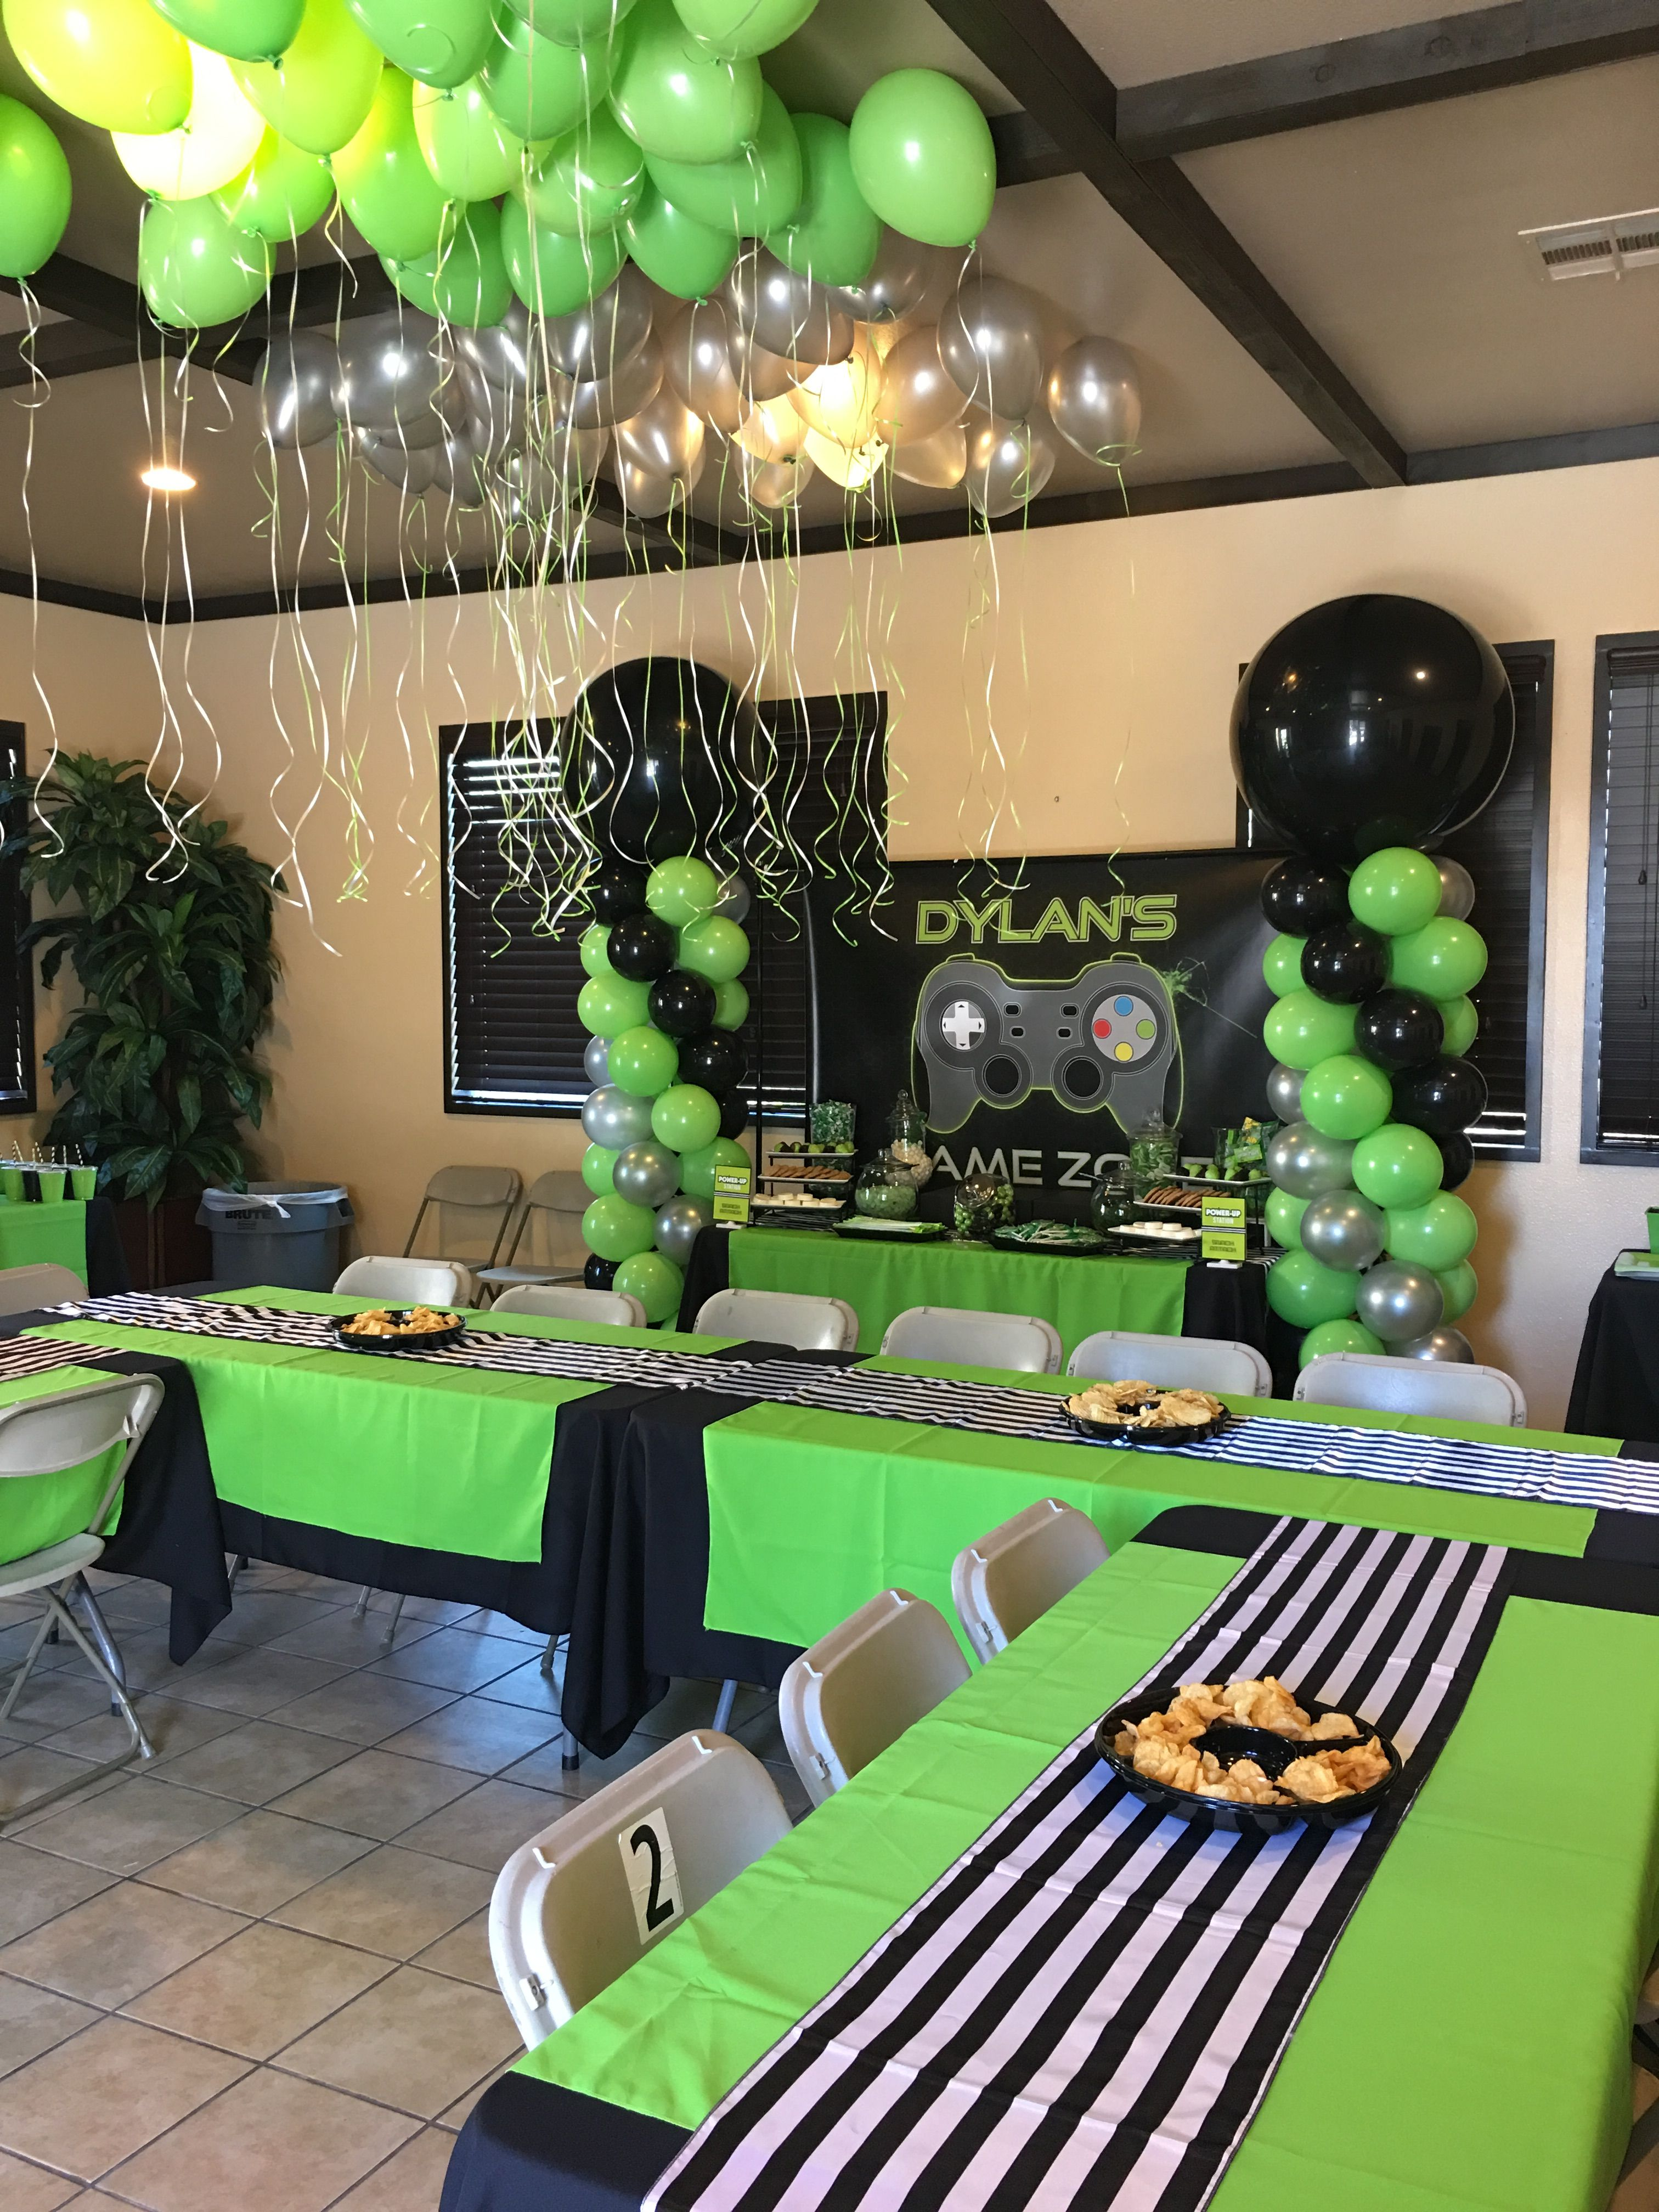 Video game party Party ideas Pinterest Video game